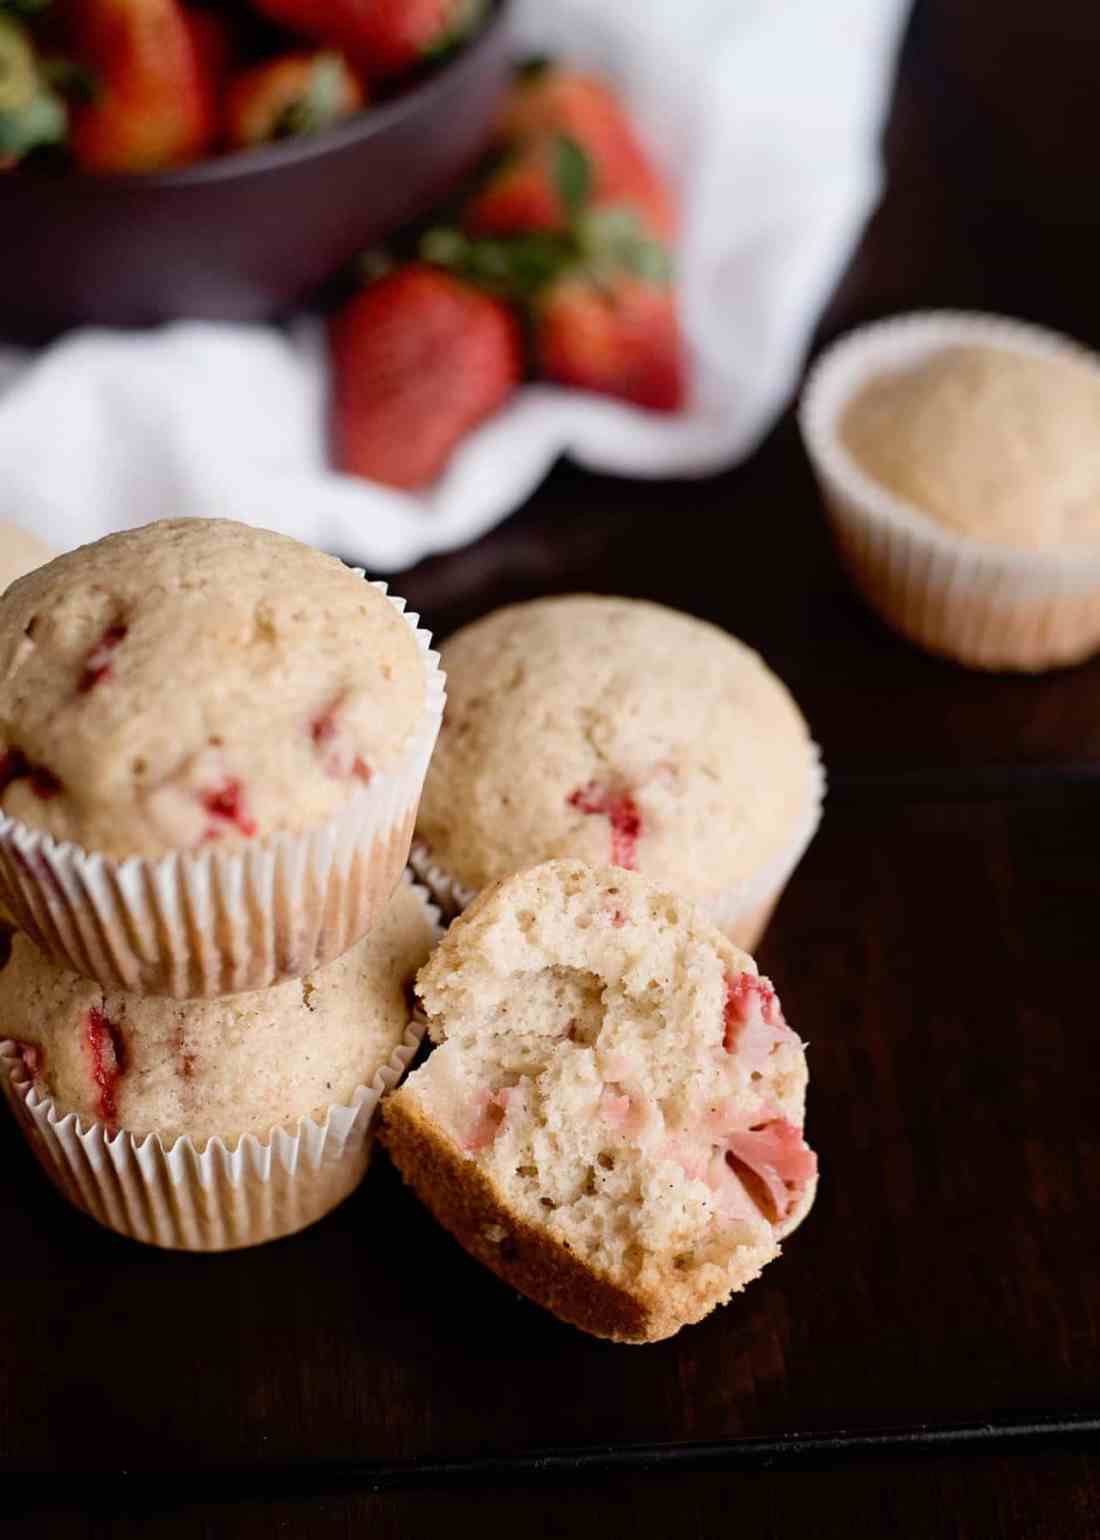 strawberry muffins stacked on a counter, one with a bite out of it.